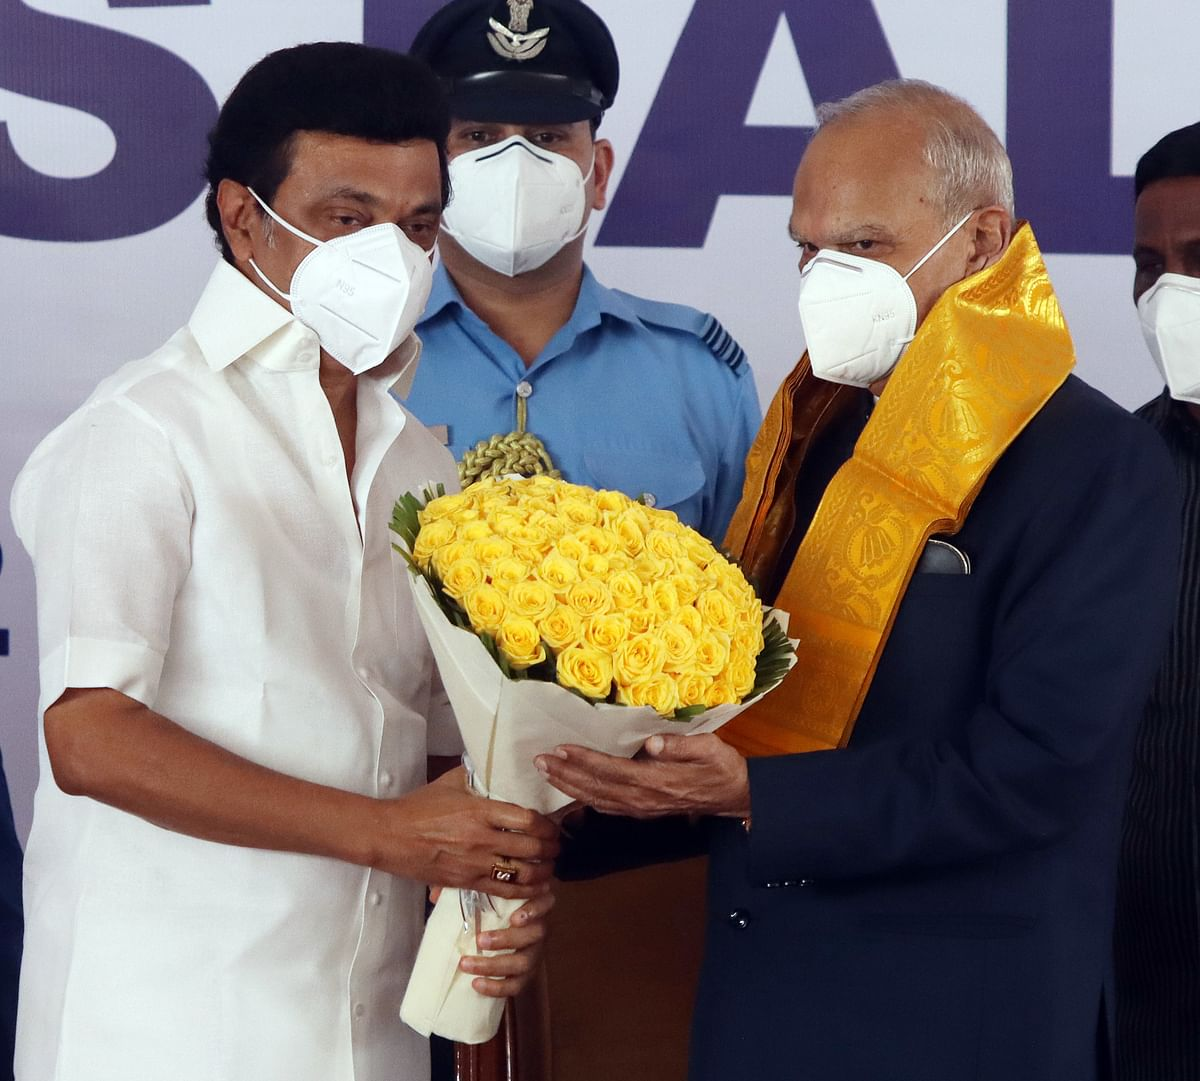 DMK Chief MK Stalin felicitates Governor Banwarilal Purohit during his oath ceremony as the Chief Minister of Tamil Nadu, at Raj Bhavan in Chennai on Friday.